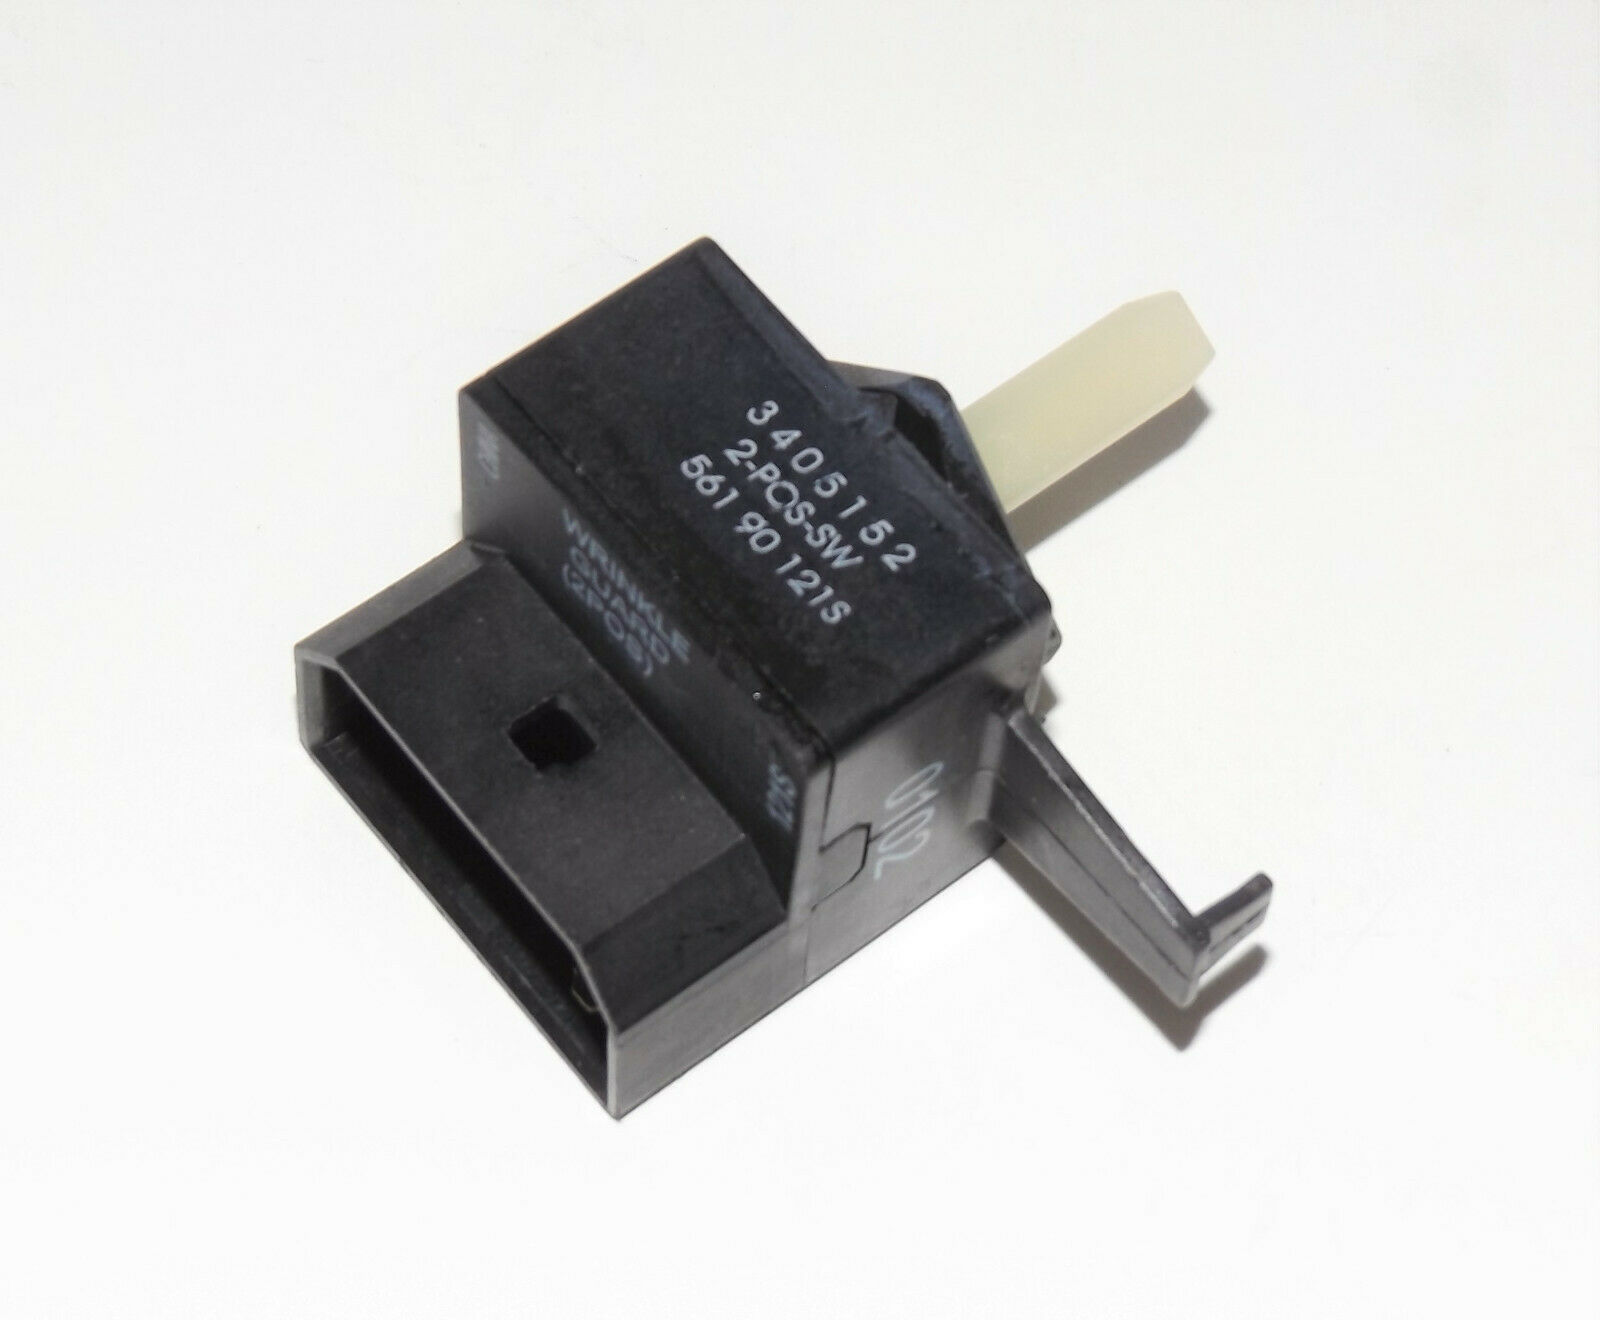 Primary image for Kenmore Dryer : 2 Position Cycle Selector Switch (3405152) {P3905}